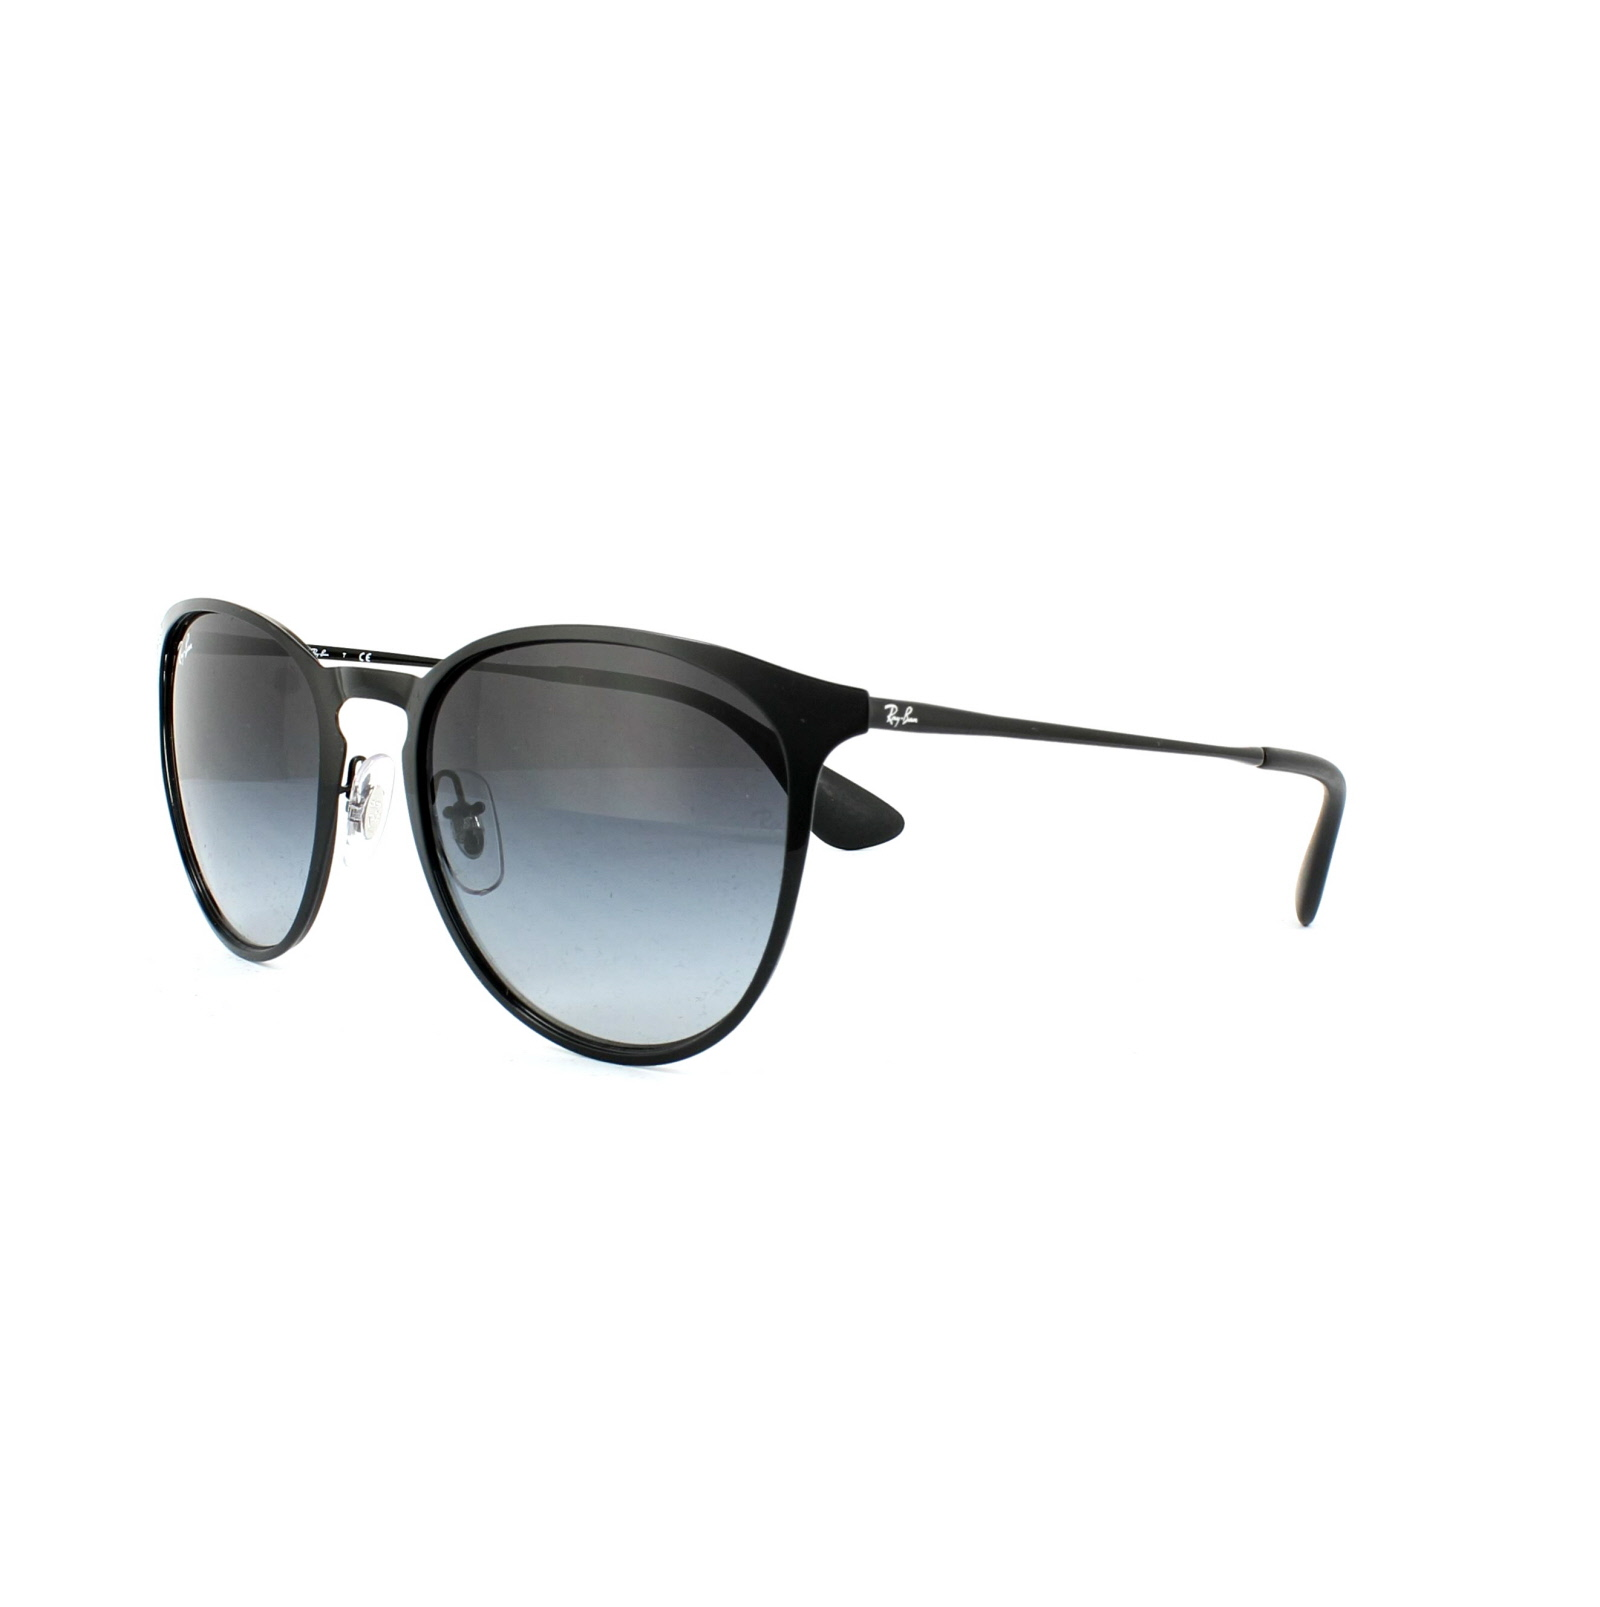 fd6ca0d9713 Sentinel Ray-Ban Sunglasses Erika Metal 3539 002 8G Black Grey Gradient